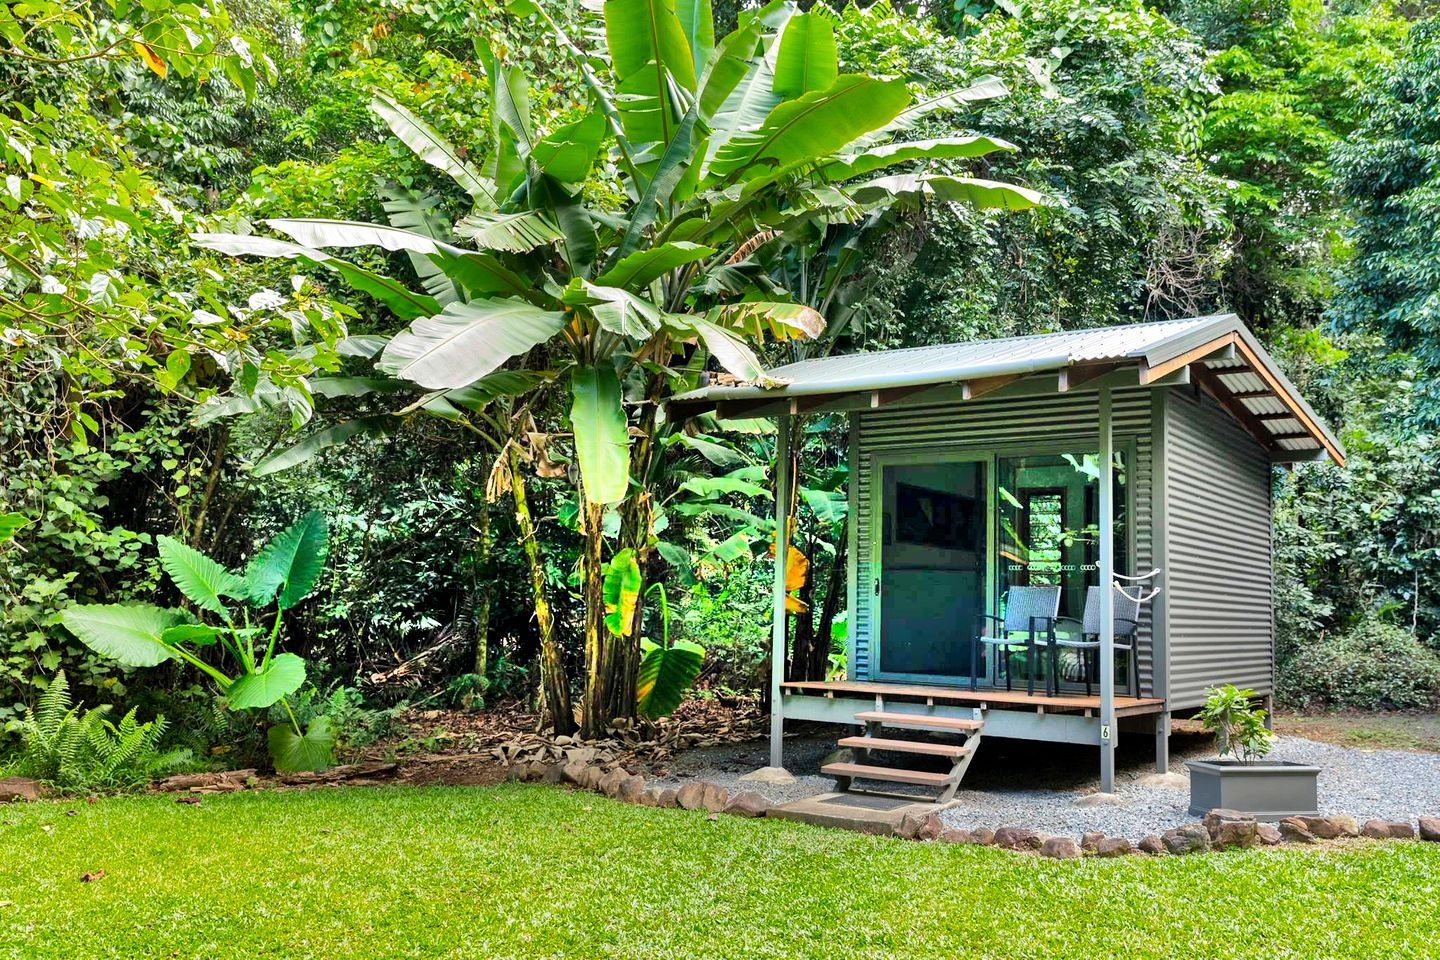 This tropical Cape Tribulation accommodation is ideal for glamping in Queensland